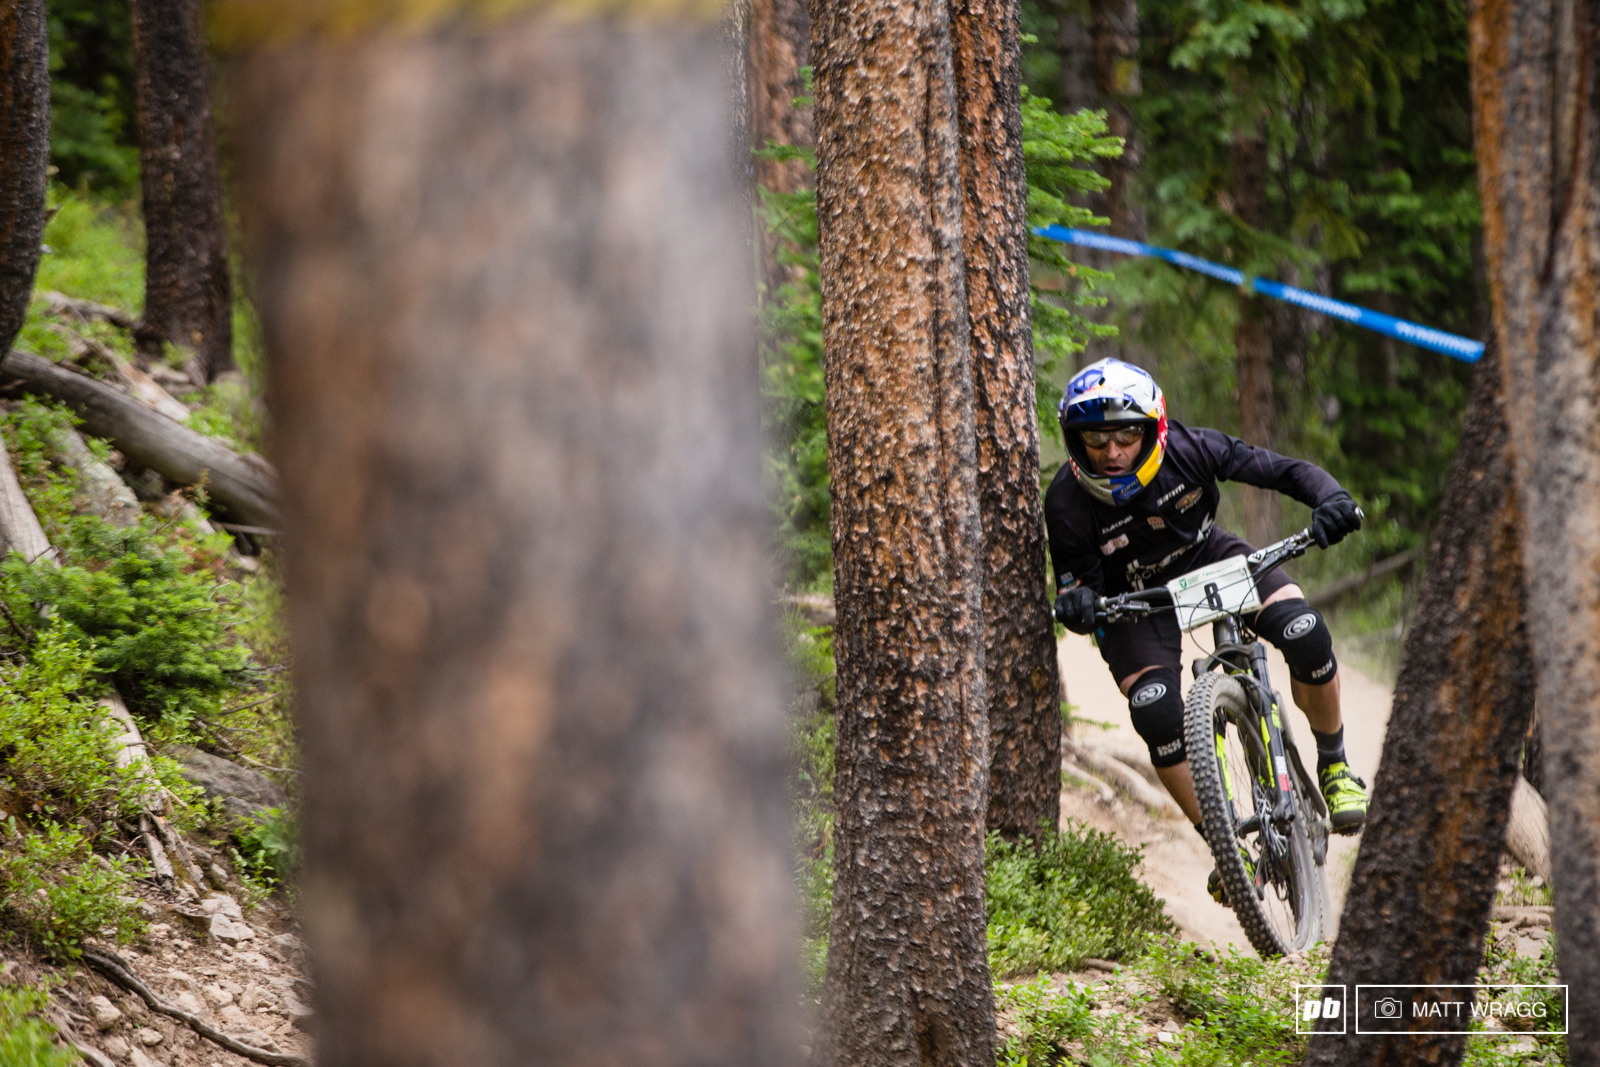 Rene Wildhaber was flying all weekend getting very close to nature at some points but keeping his speed to rack up yet another podium finish.